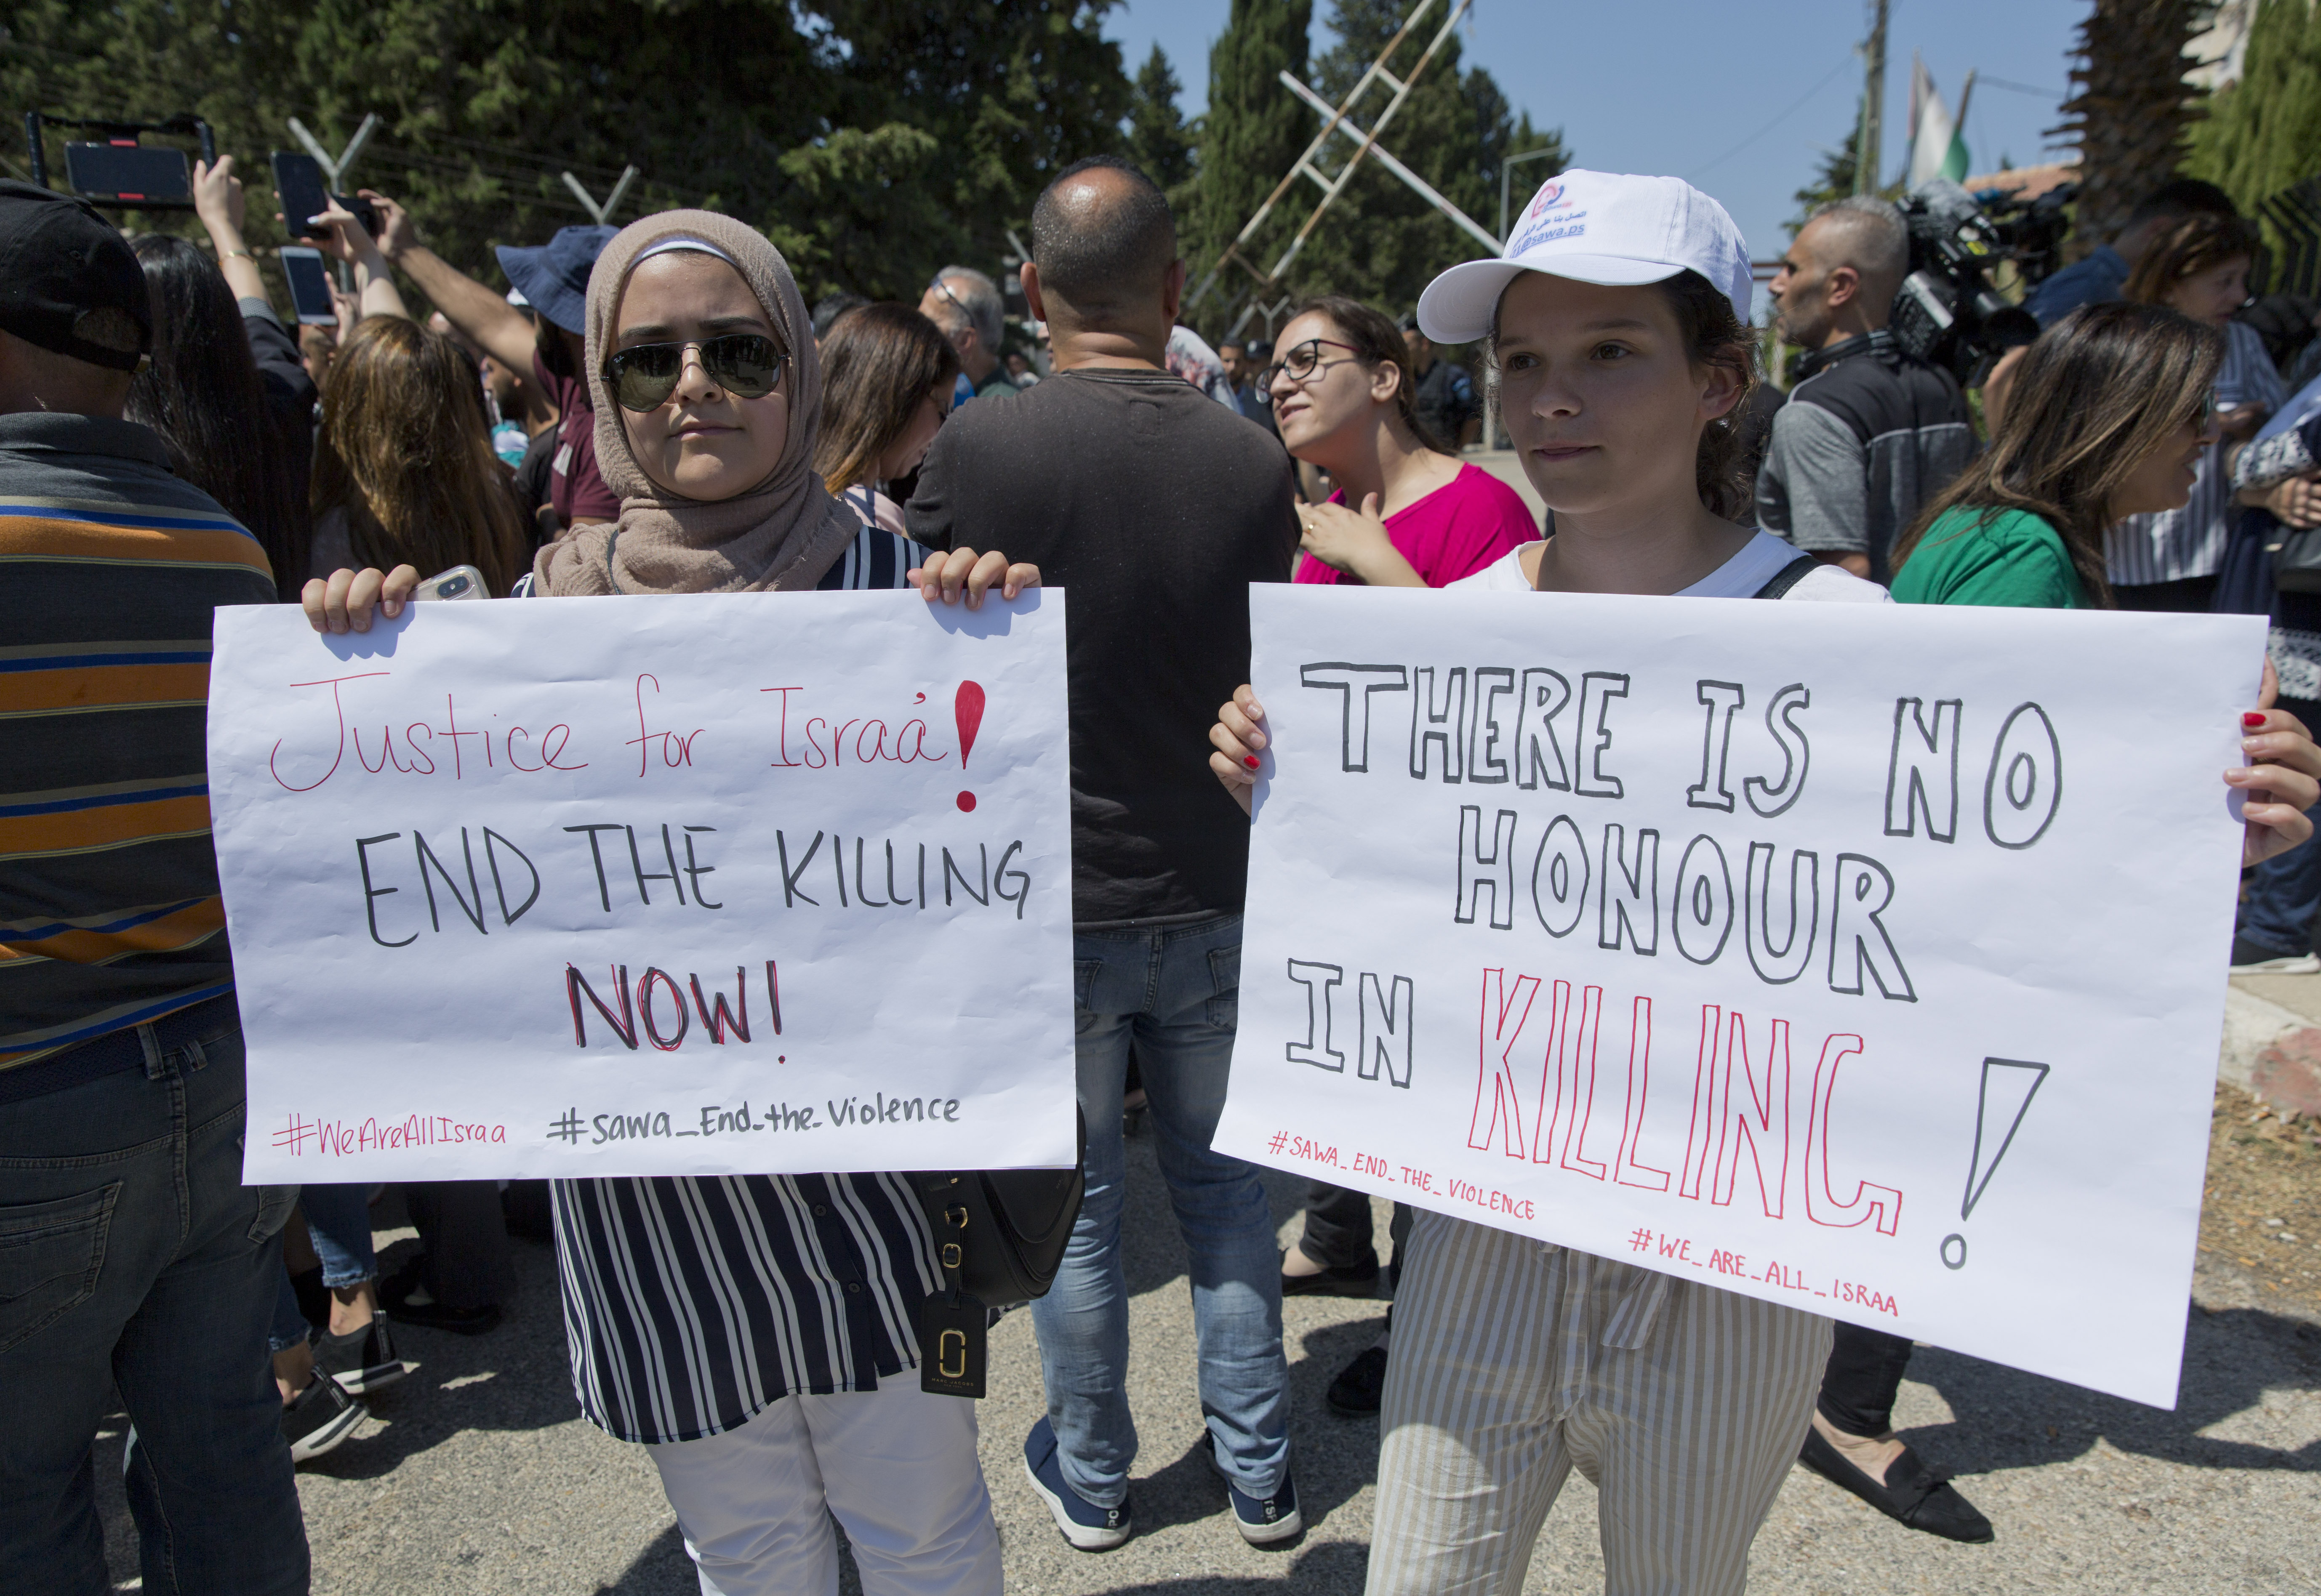 Palestinian women protest after suspected honor killing